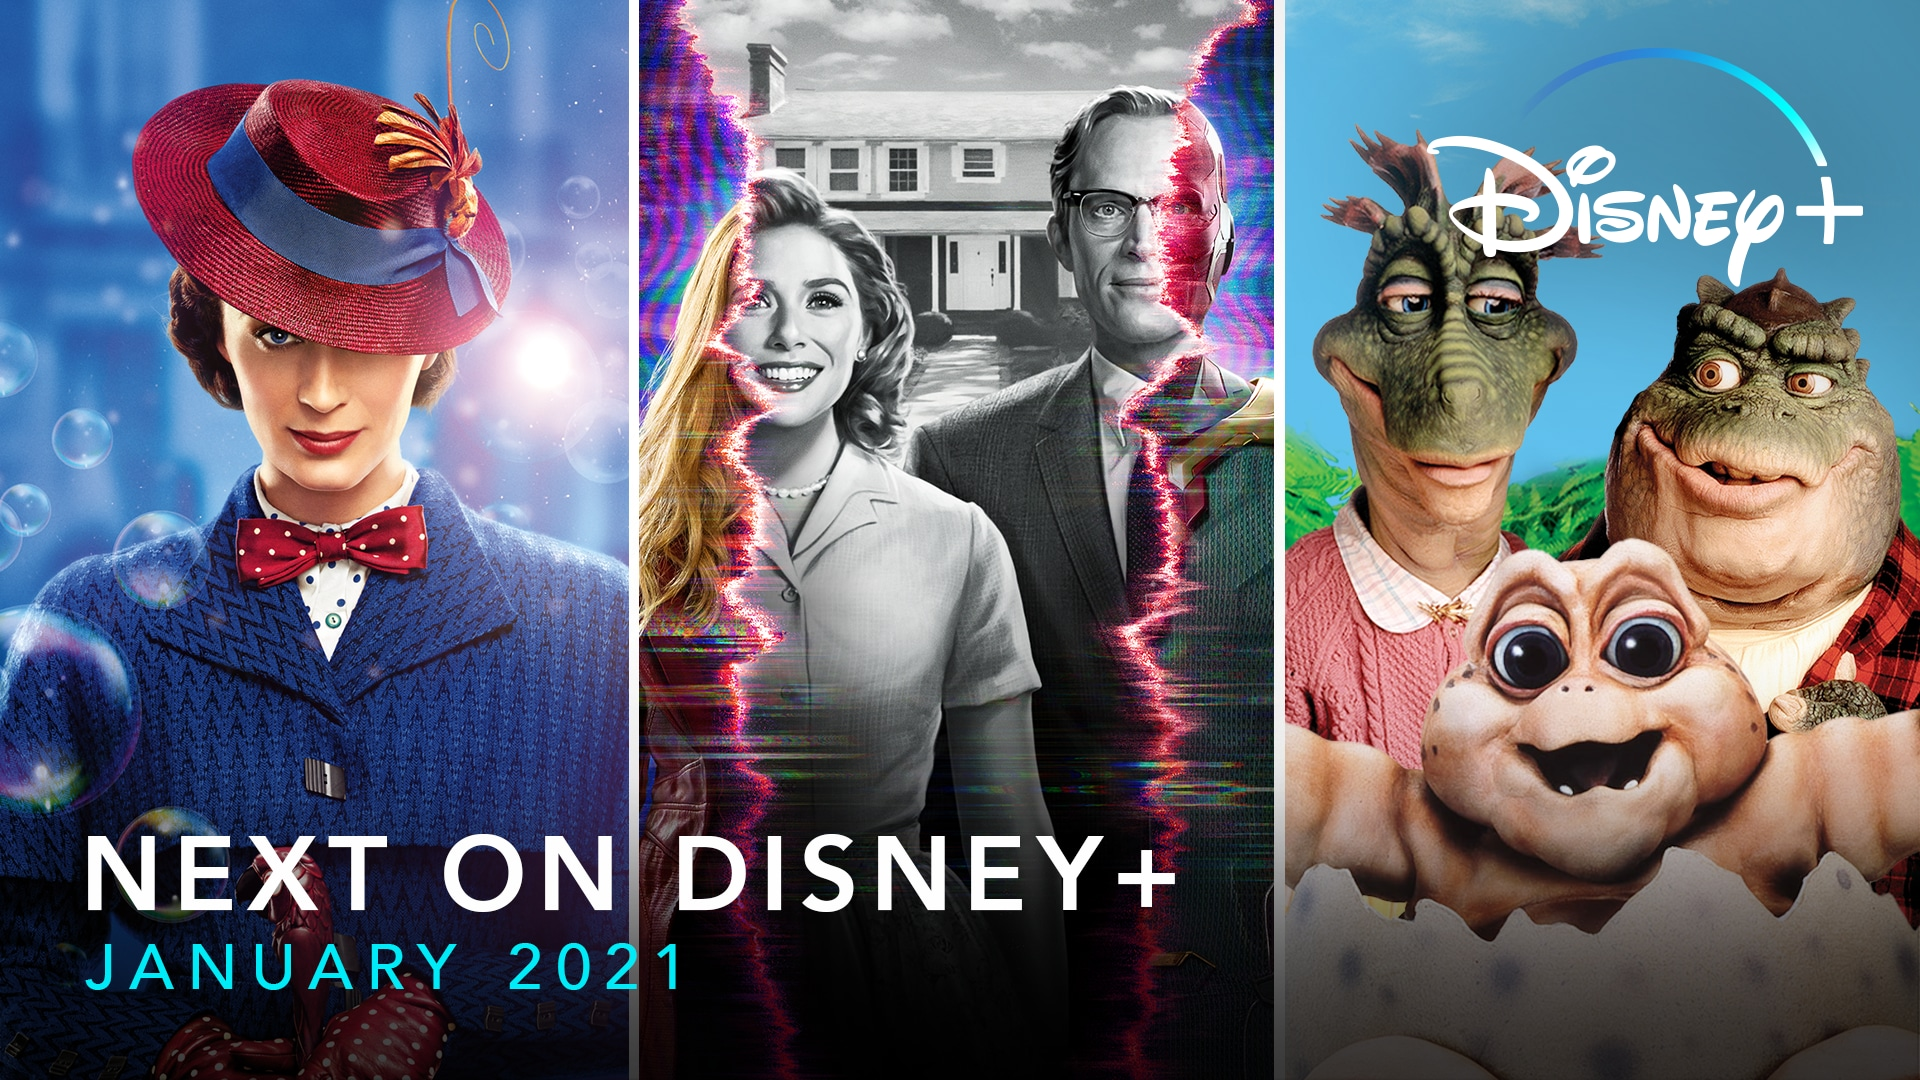 Next On Disney+ - January 2021 | Disney+ | Now Streaming